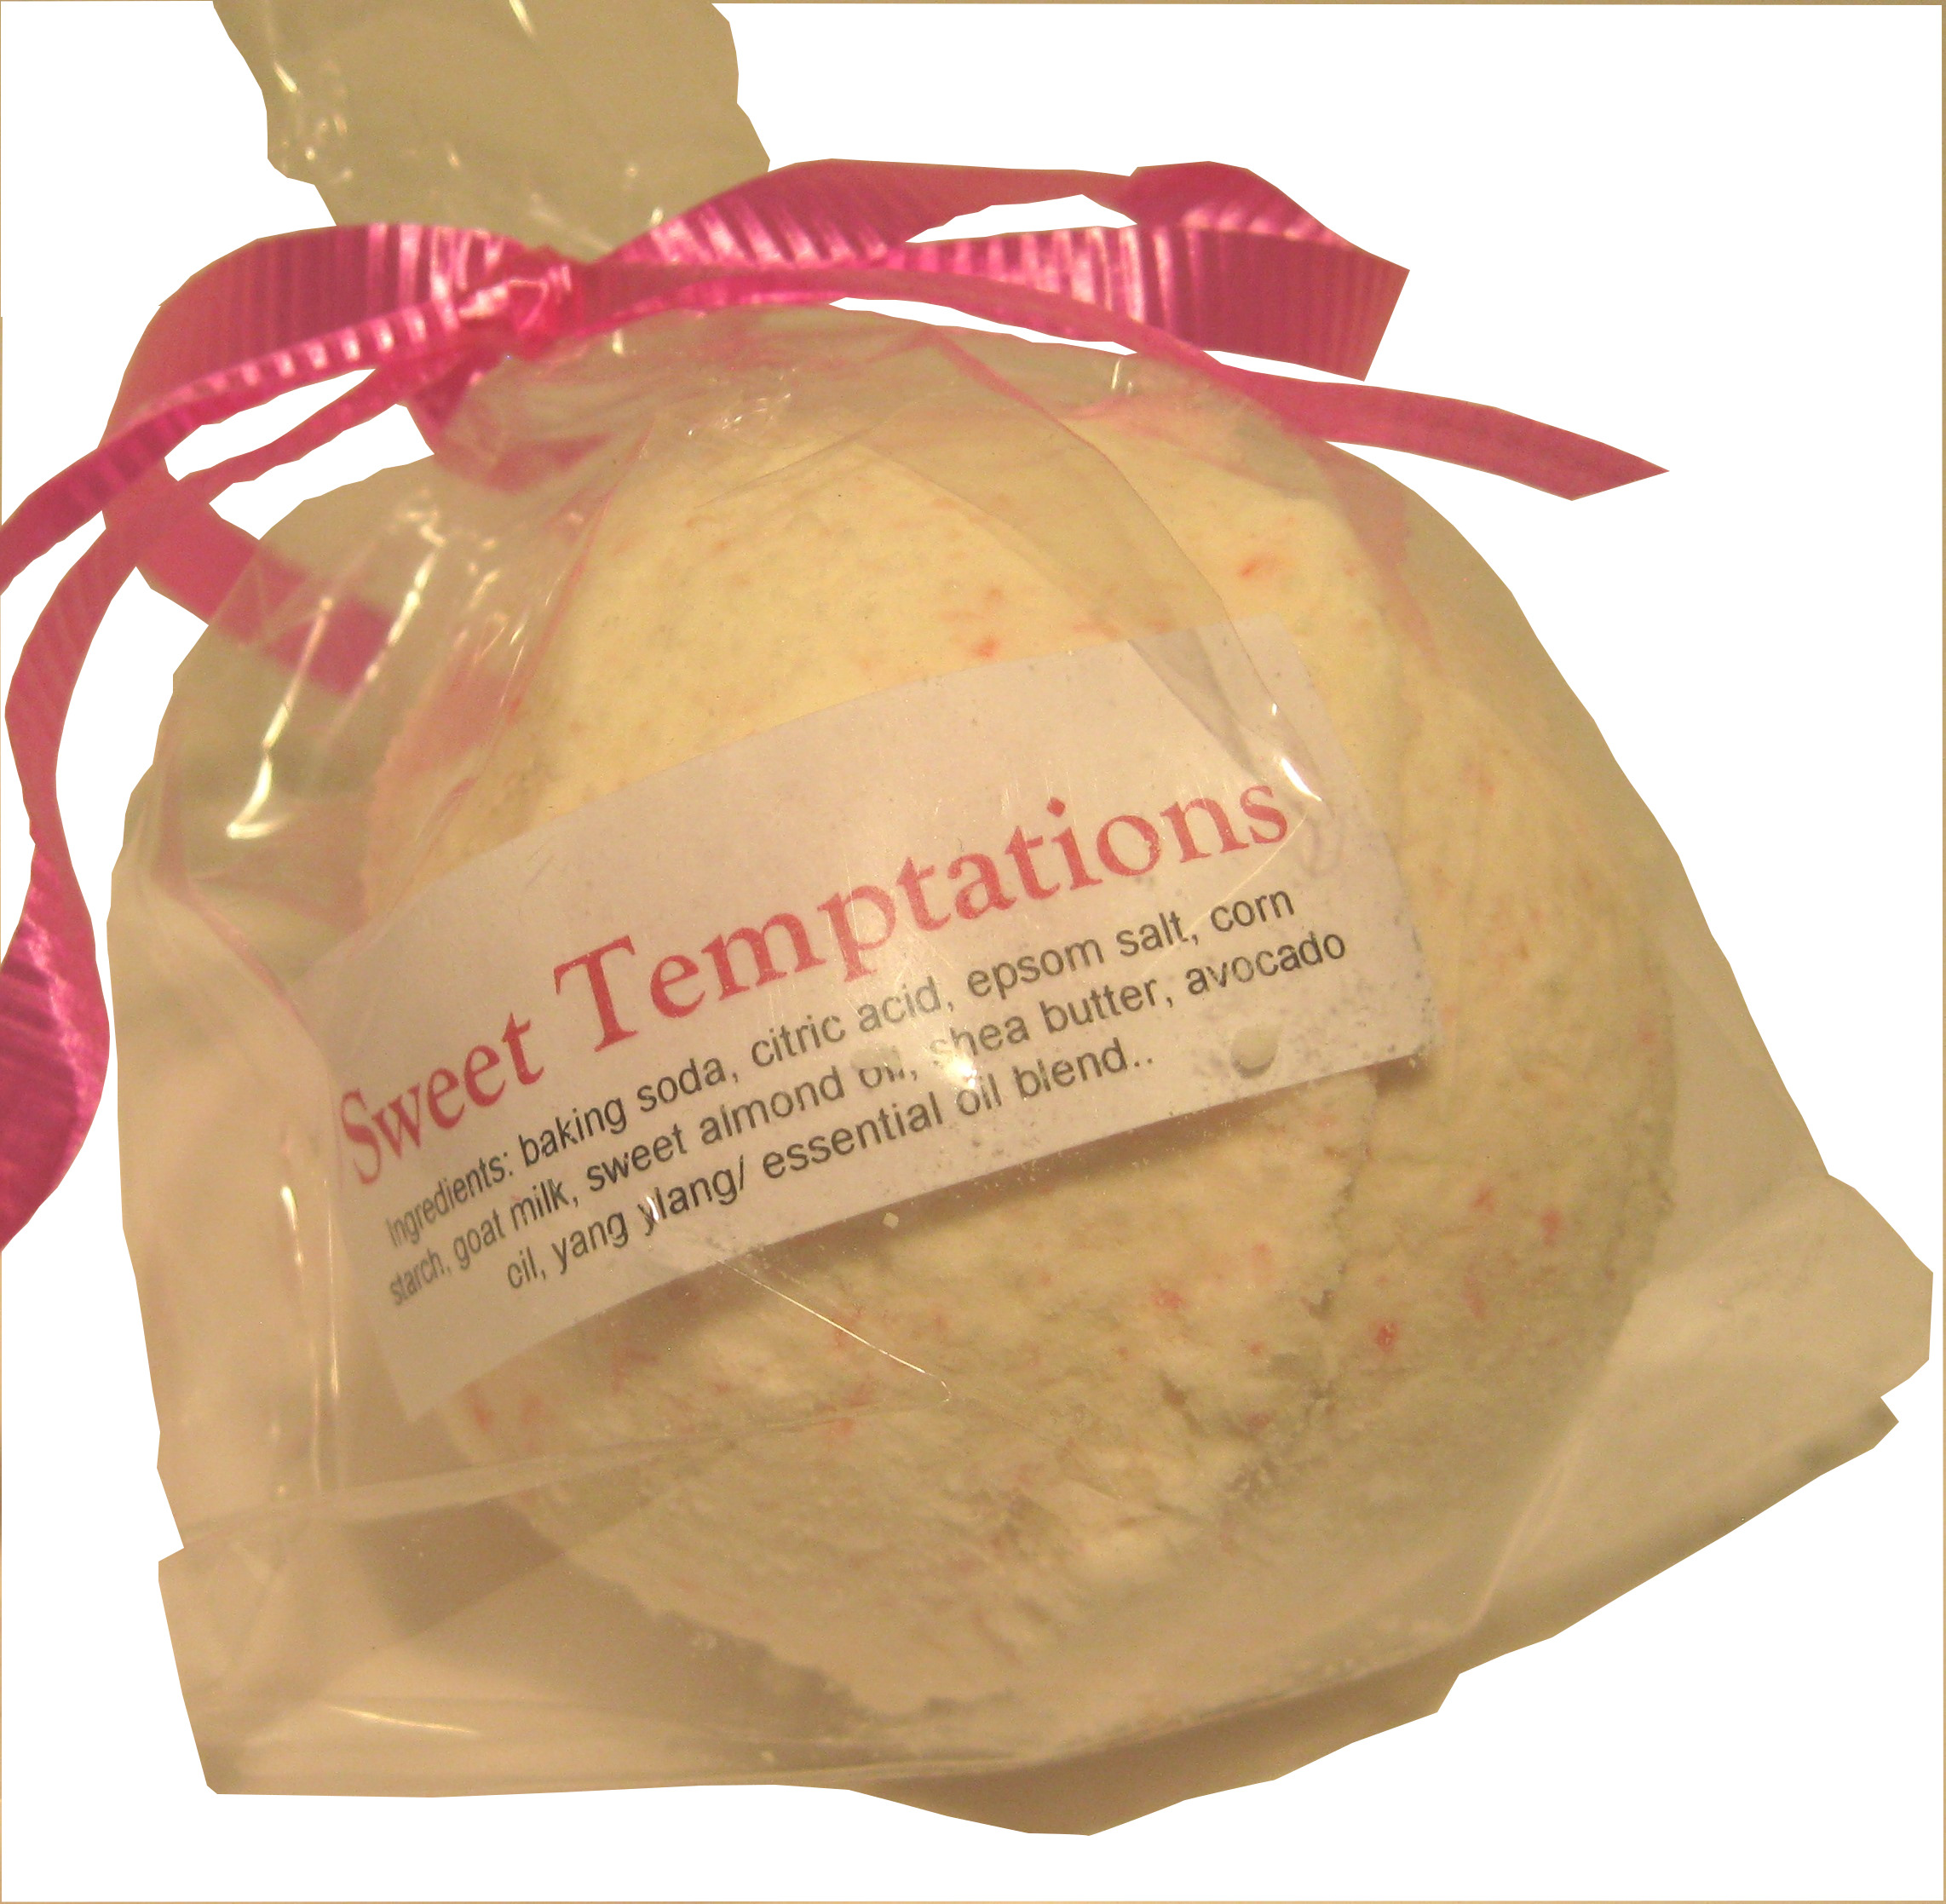 Sweet Temptations Goat Milk Bath Bomb - Silly Goats Soap Company